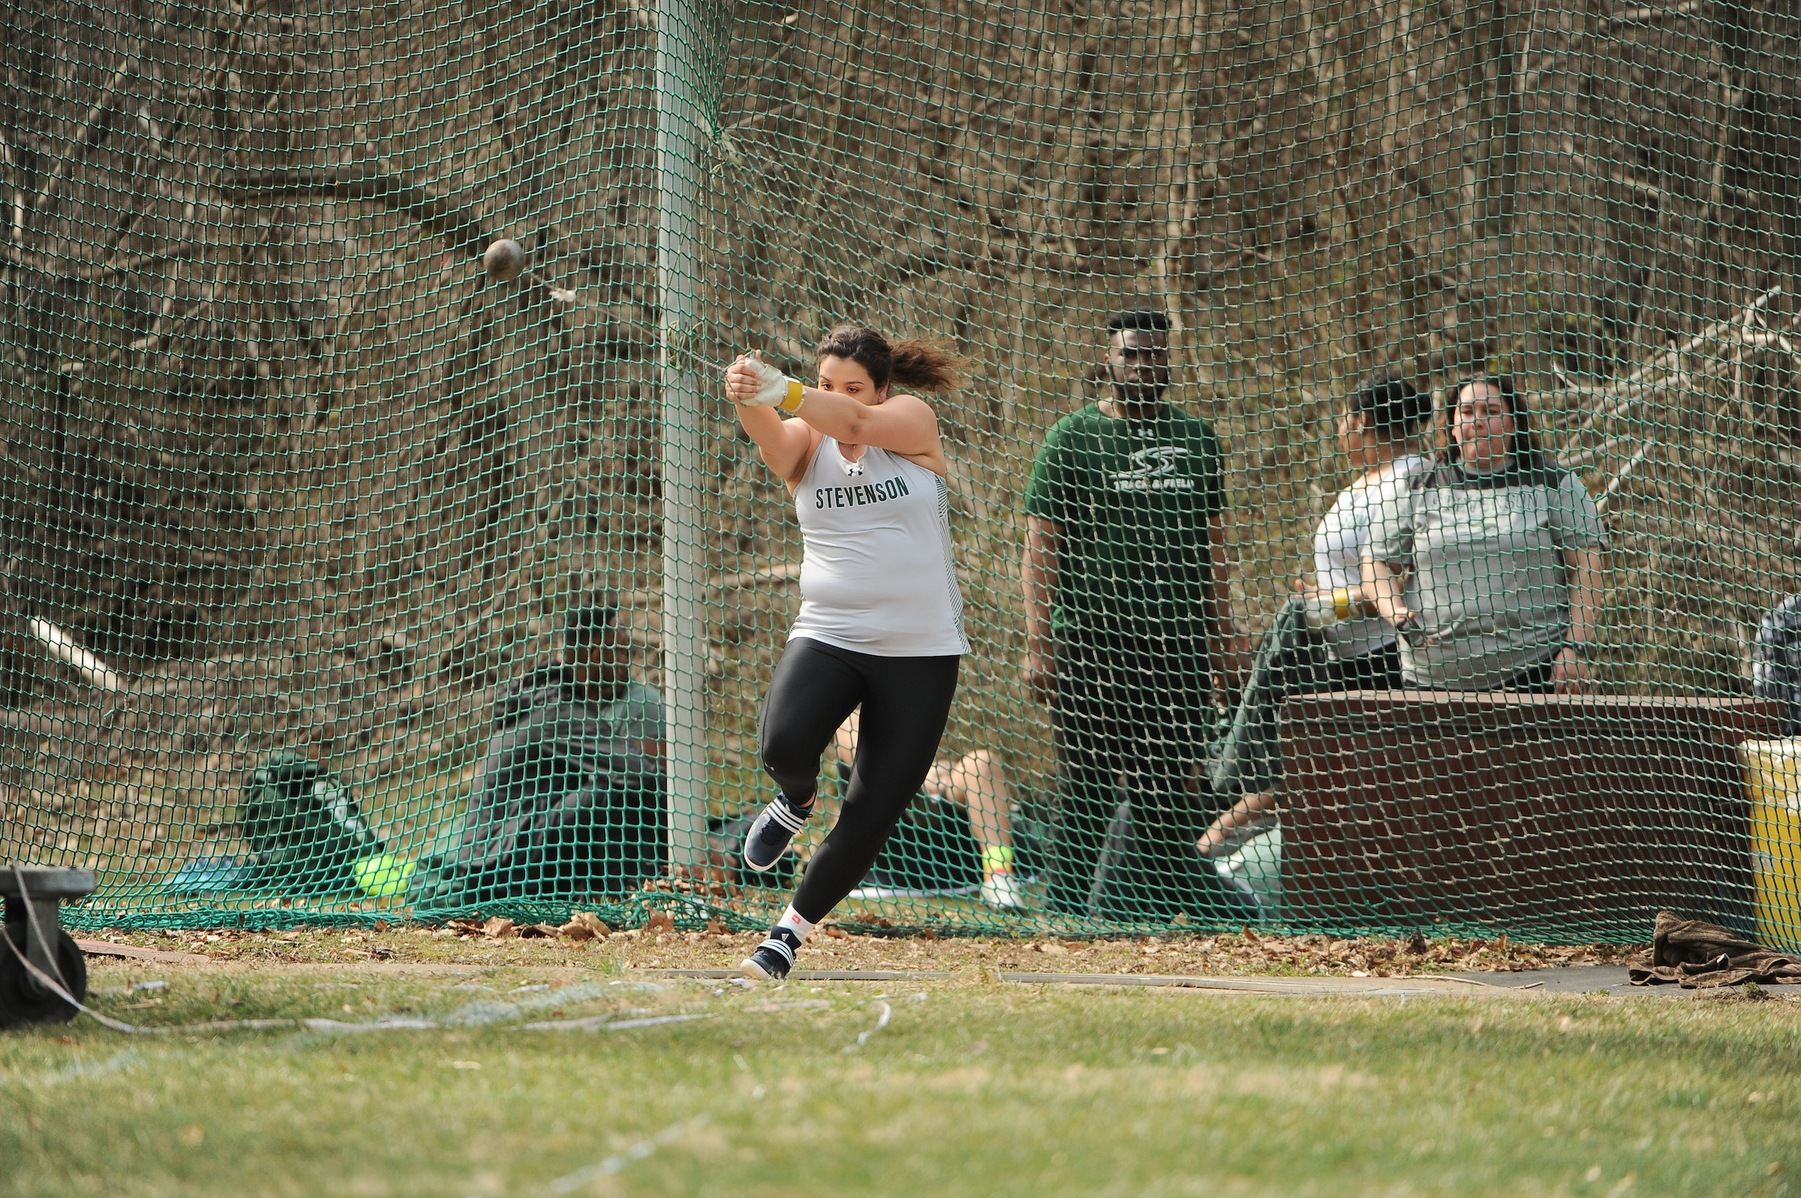 Rega, Dioses Place Second in Shot Put, Weight Throw at NYU Invite